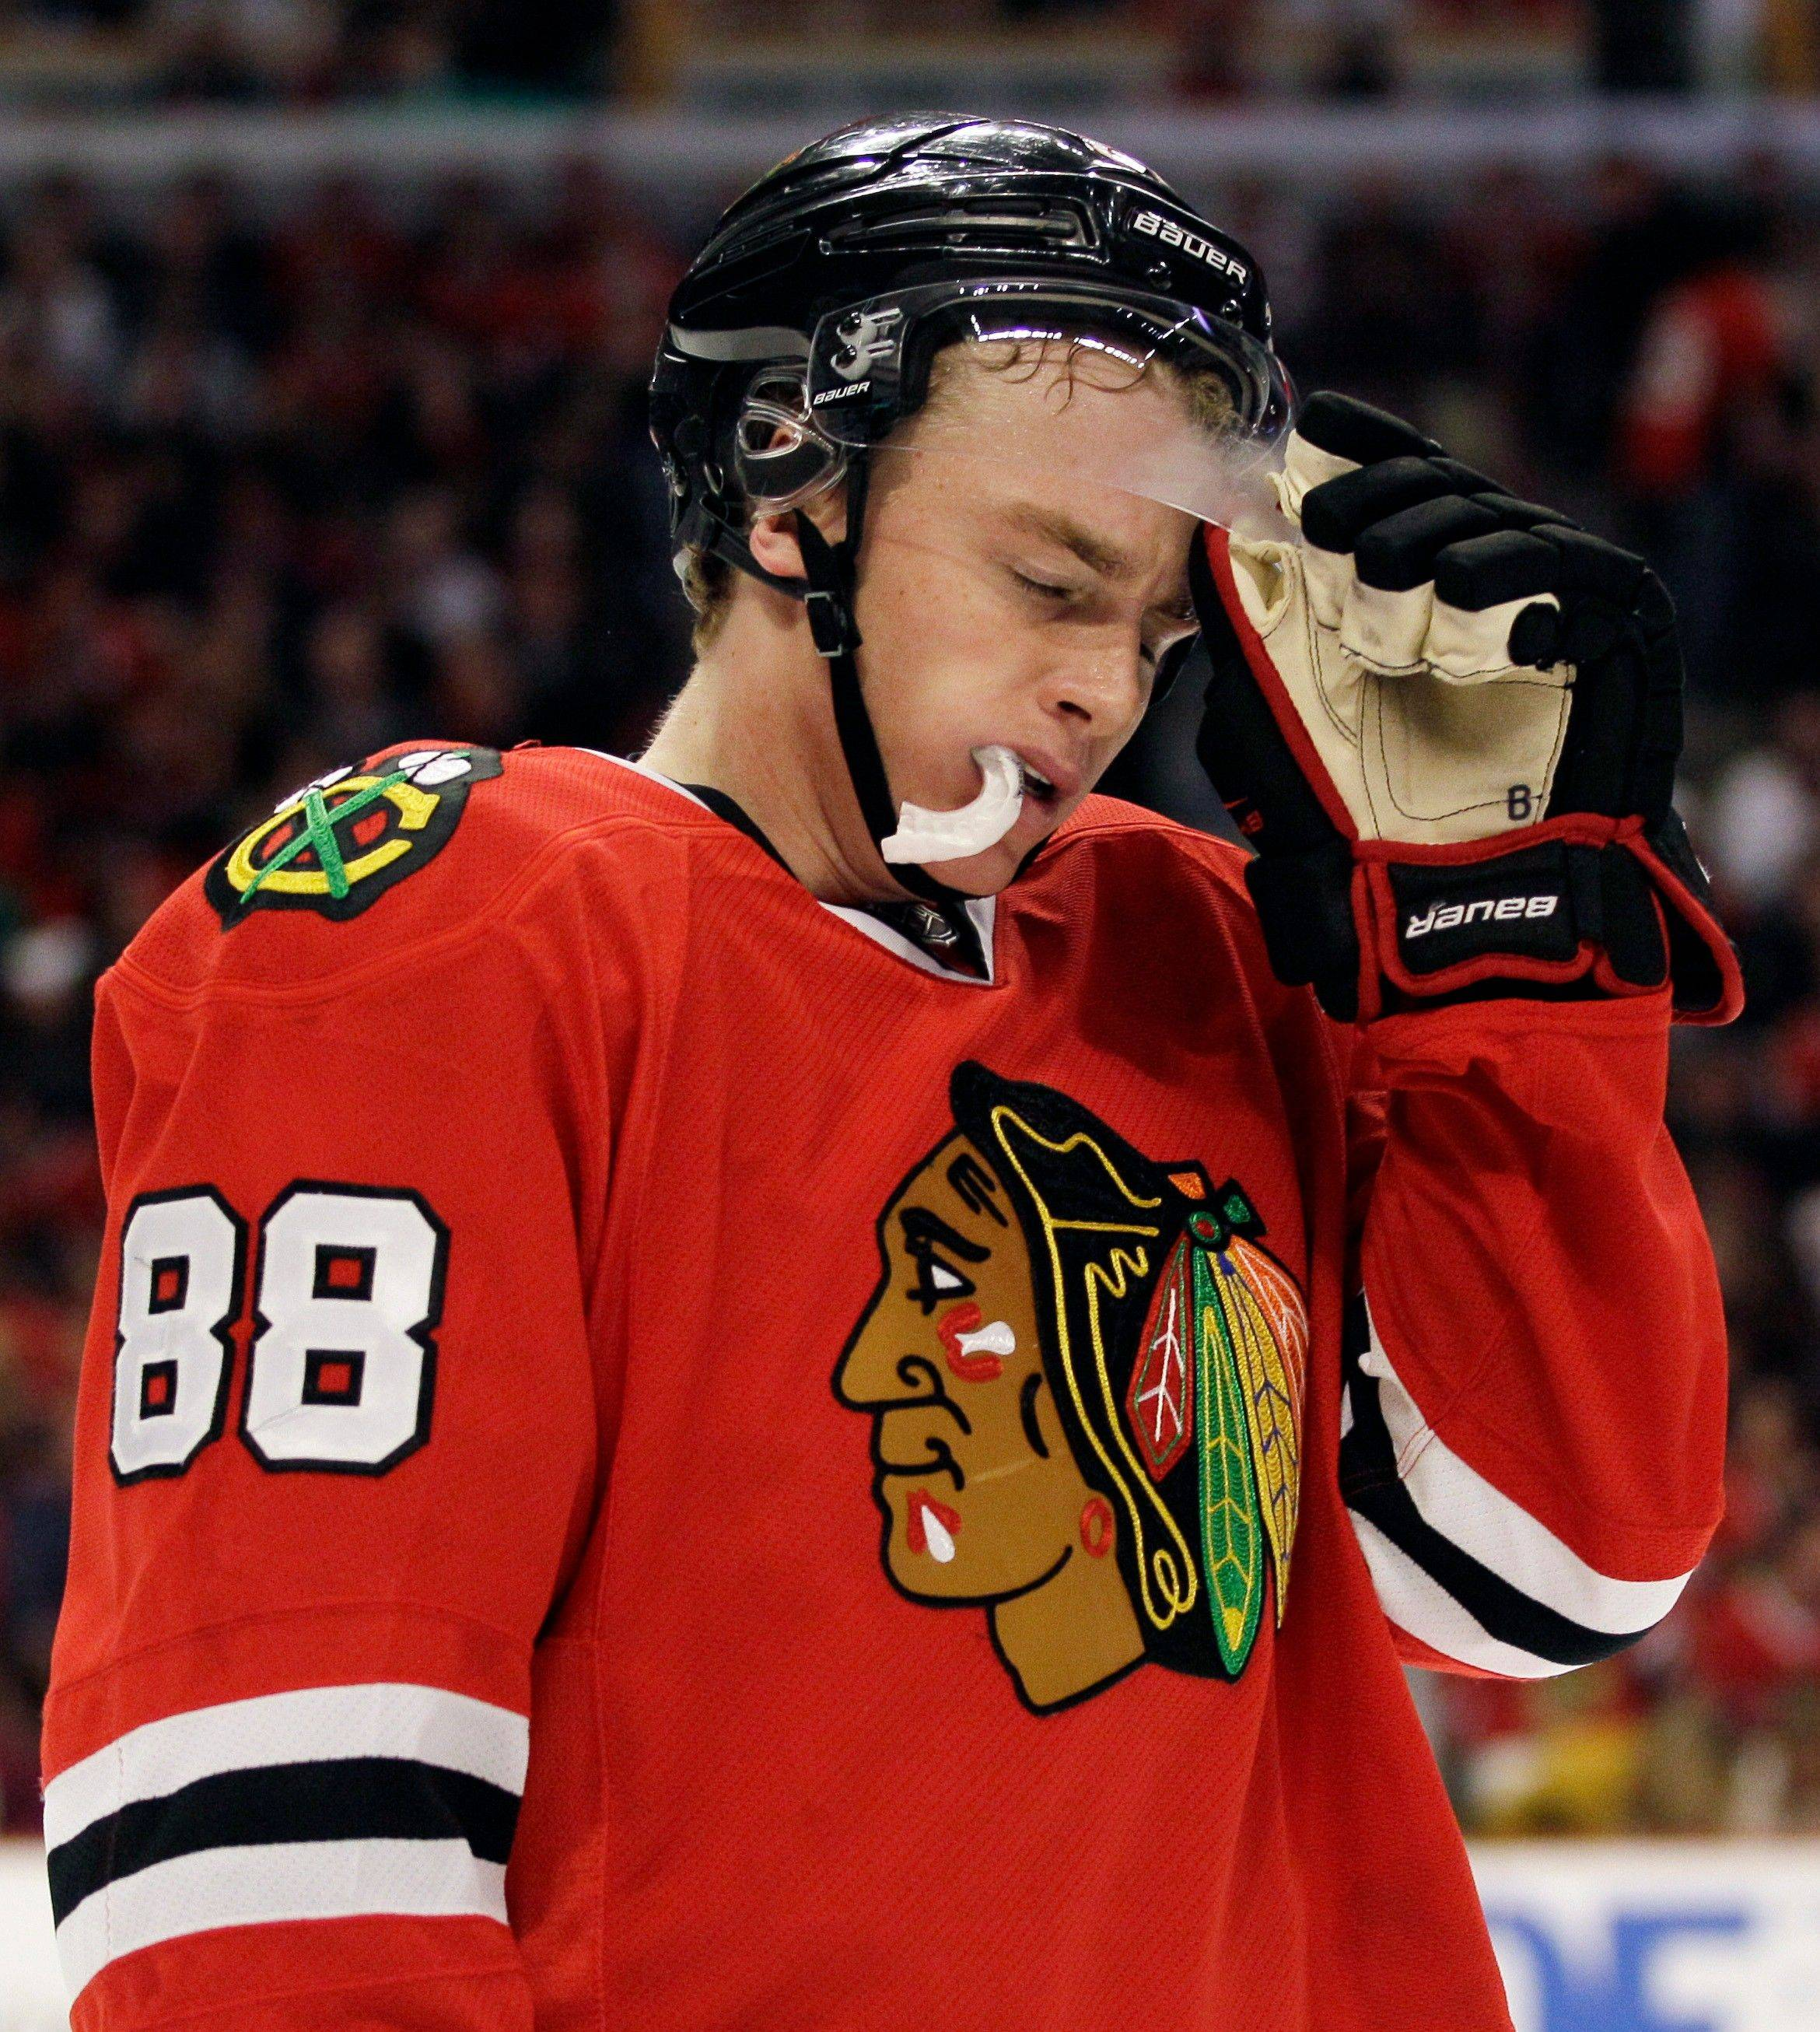 Patrick Kane's facial expression speaks volumes about the Hawks' performance Sunday against the Canucks.